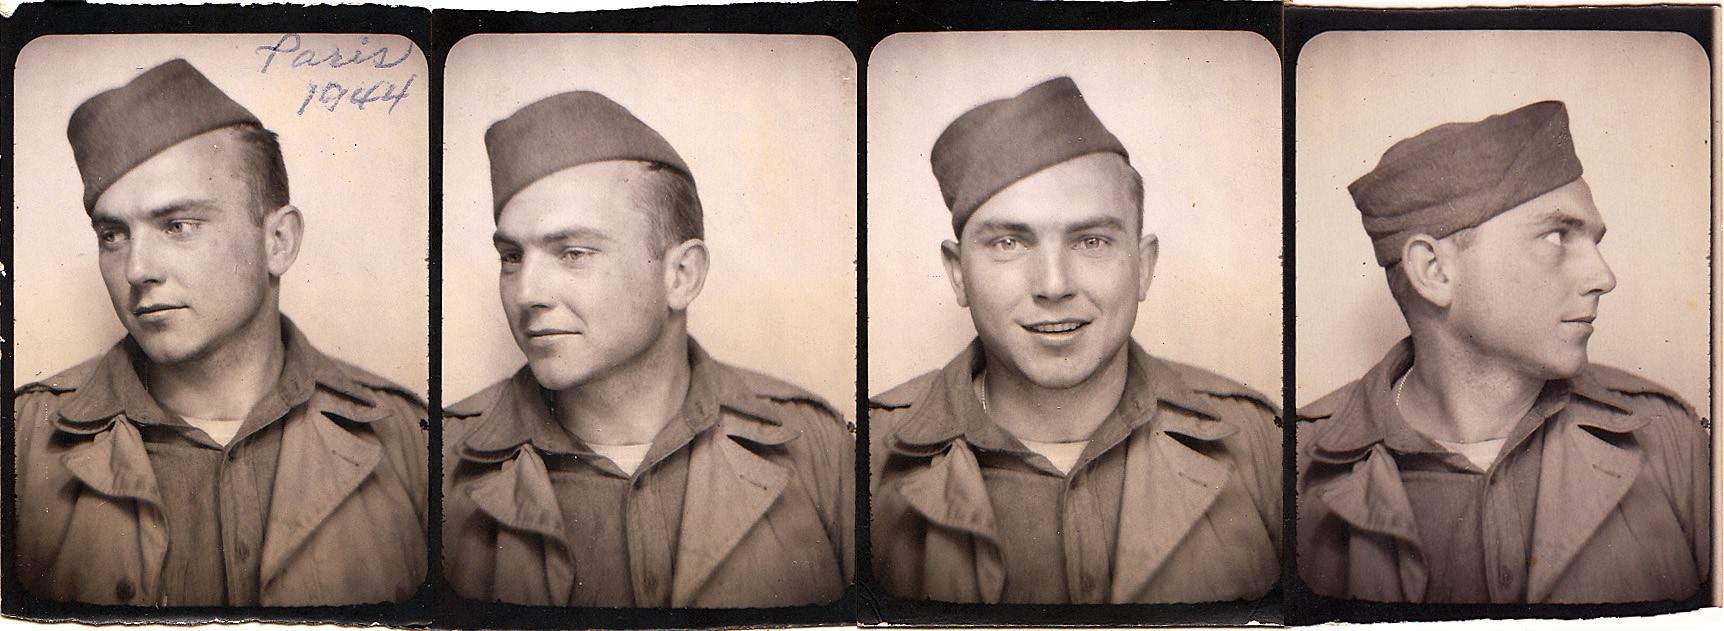 Photos of 17th Engineer David Edd Hiett - Paris December 1944